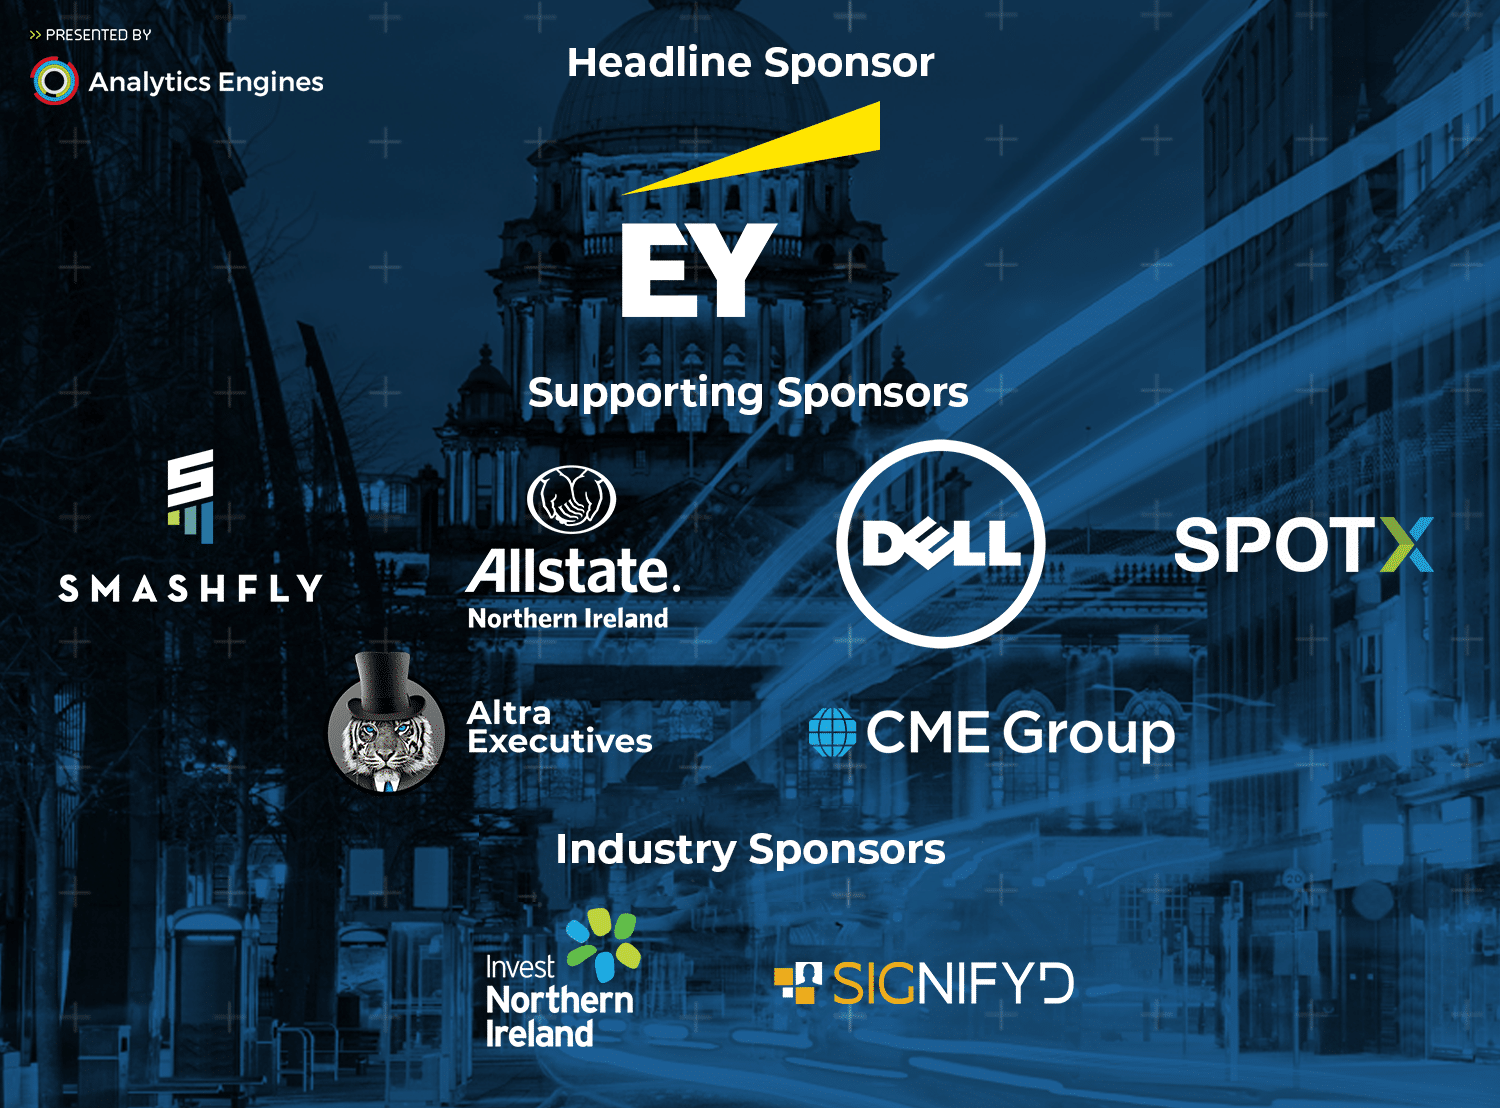 Big Data Belfast Sponsors | Analytics Engines